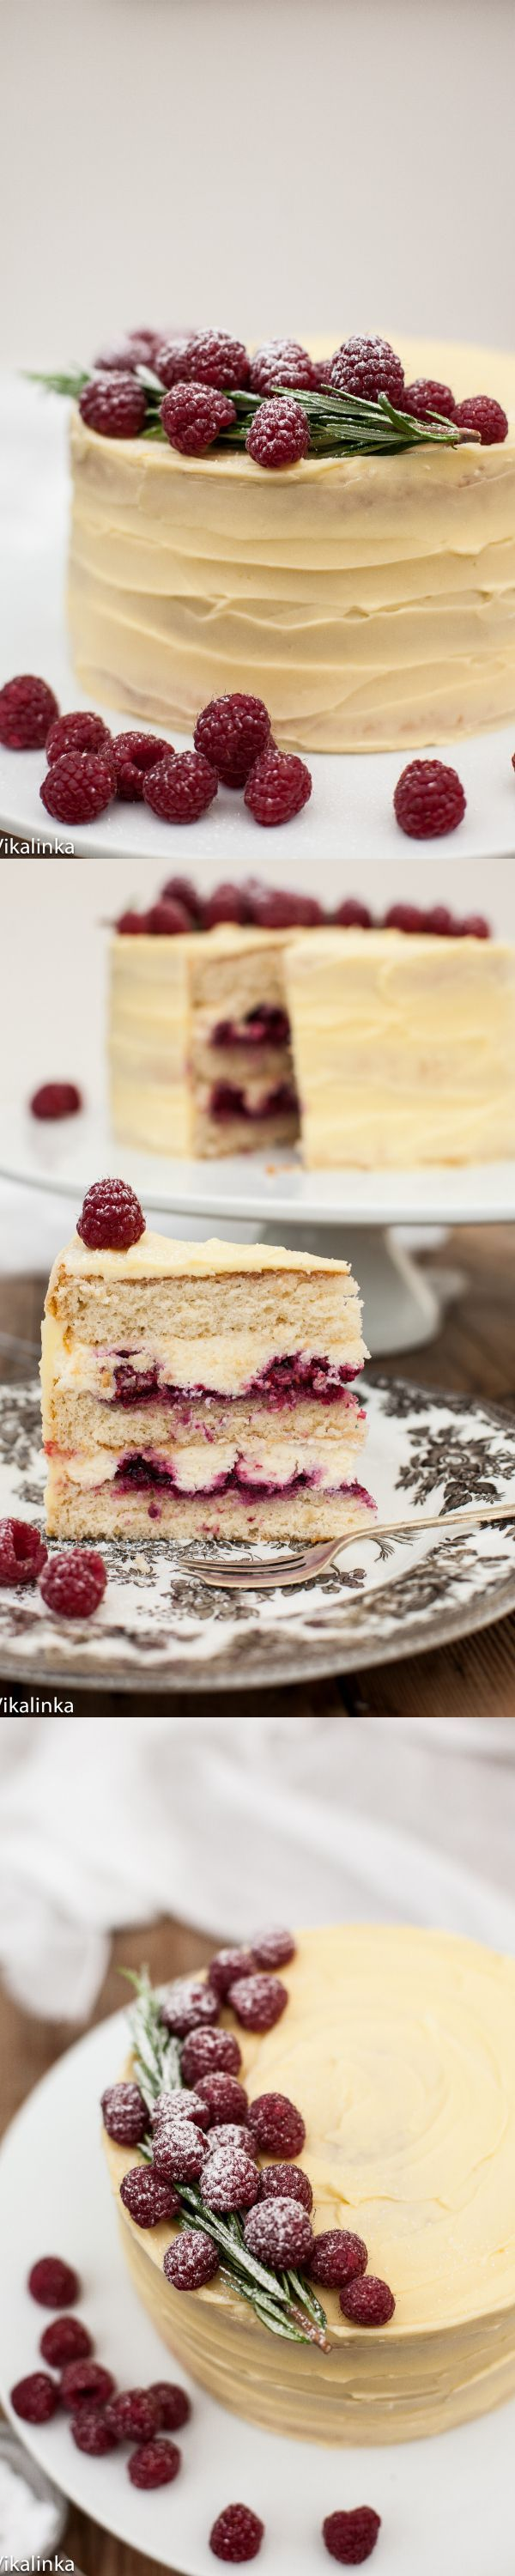 Delicate vanilla cake layers filled with mascarpone cream and raspberry compote and covered with white chocolate buttercream. A